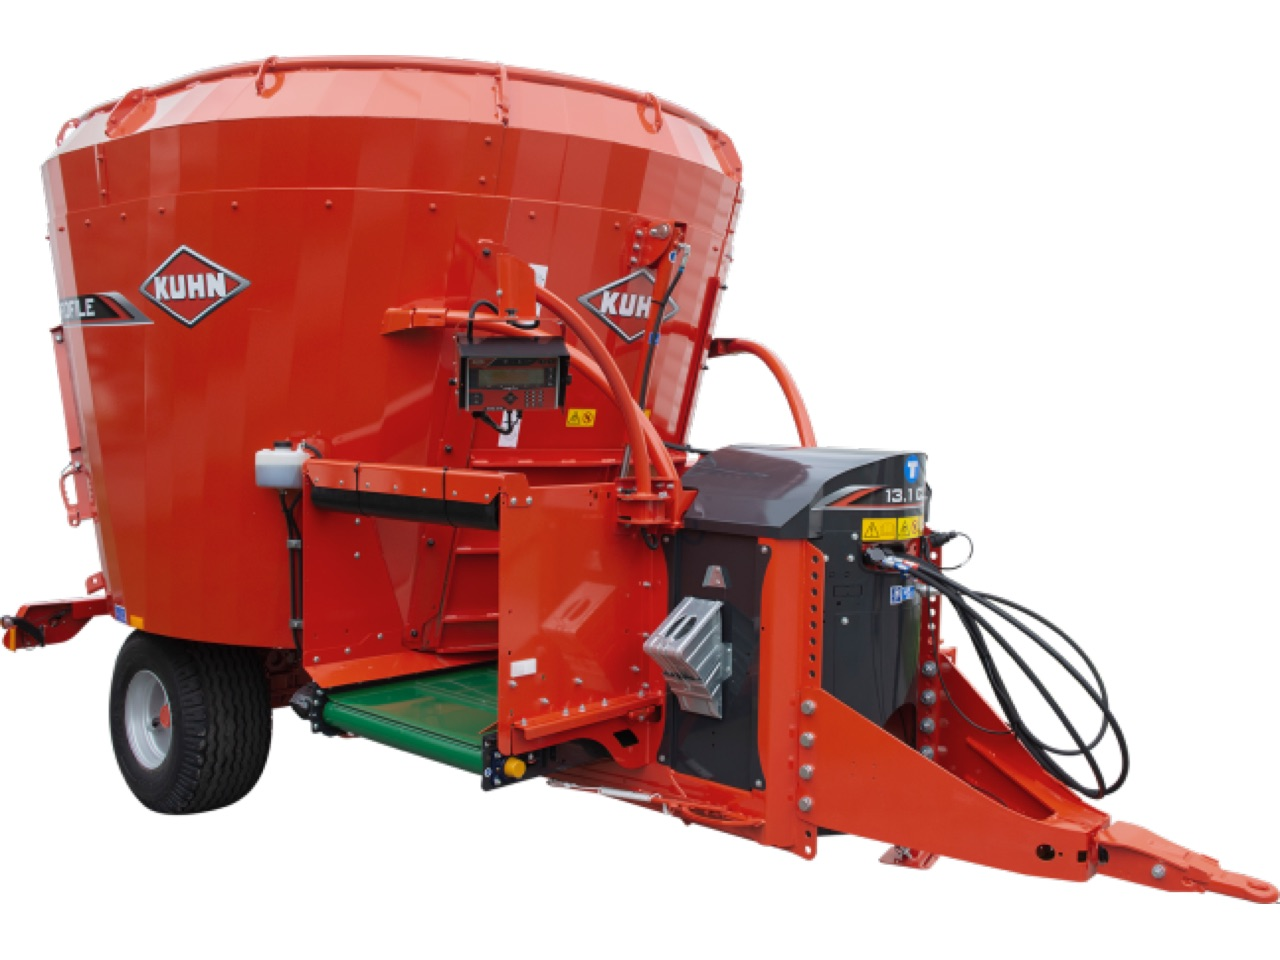 Kuhn Profile 1 CL Profile 10.1 CL